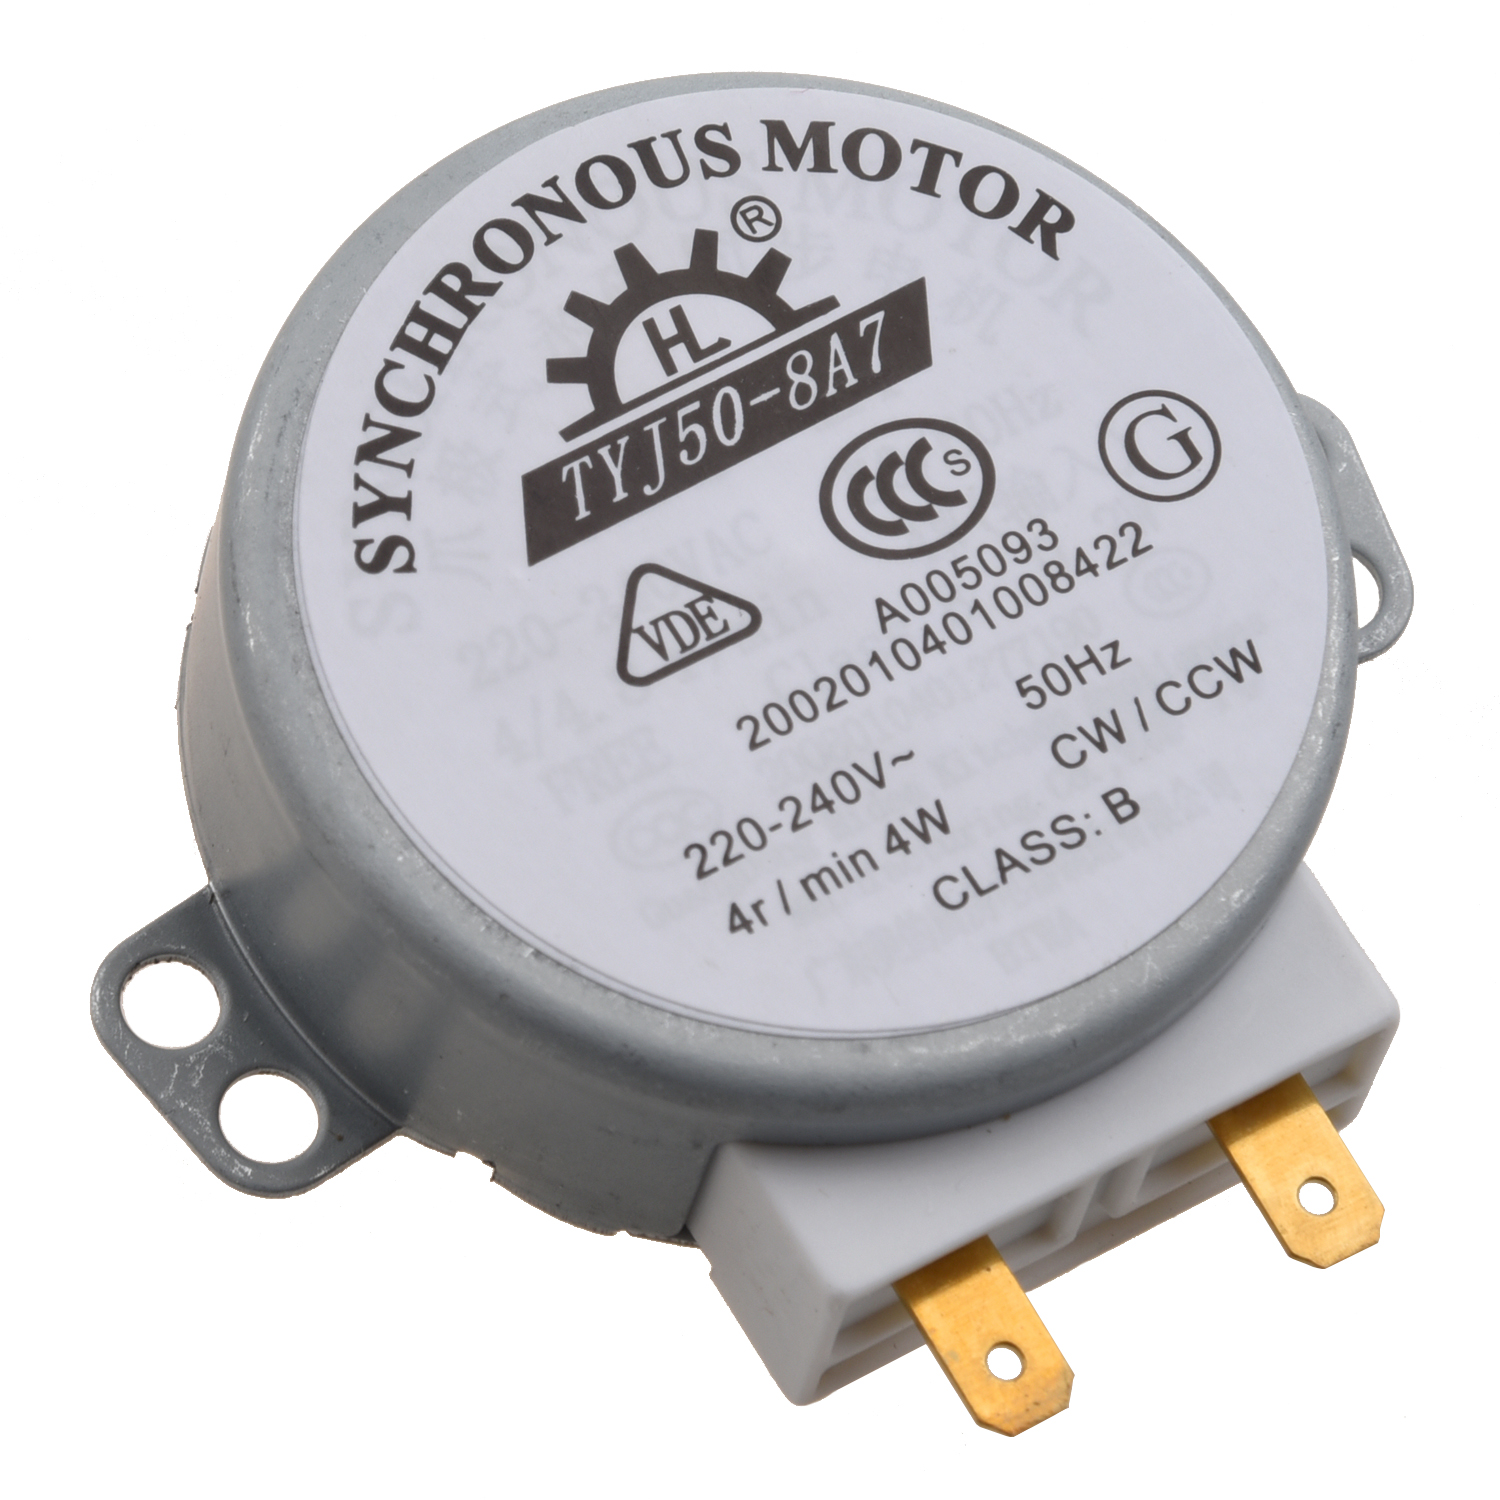 miniwave Oven Turntable Synchronous Motor 4W AC 220-240V 4 RPM CW/CCW